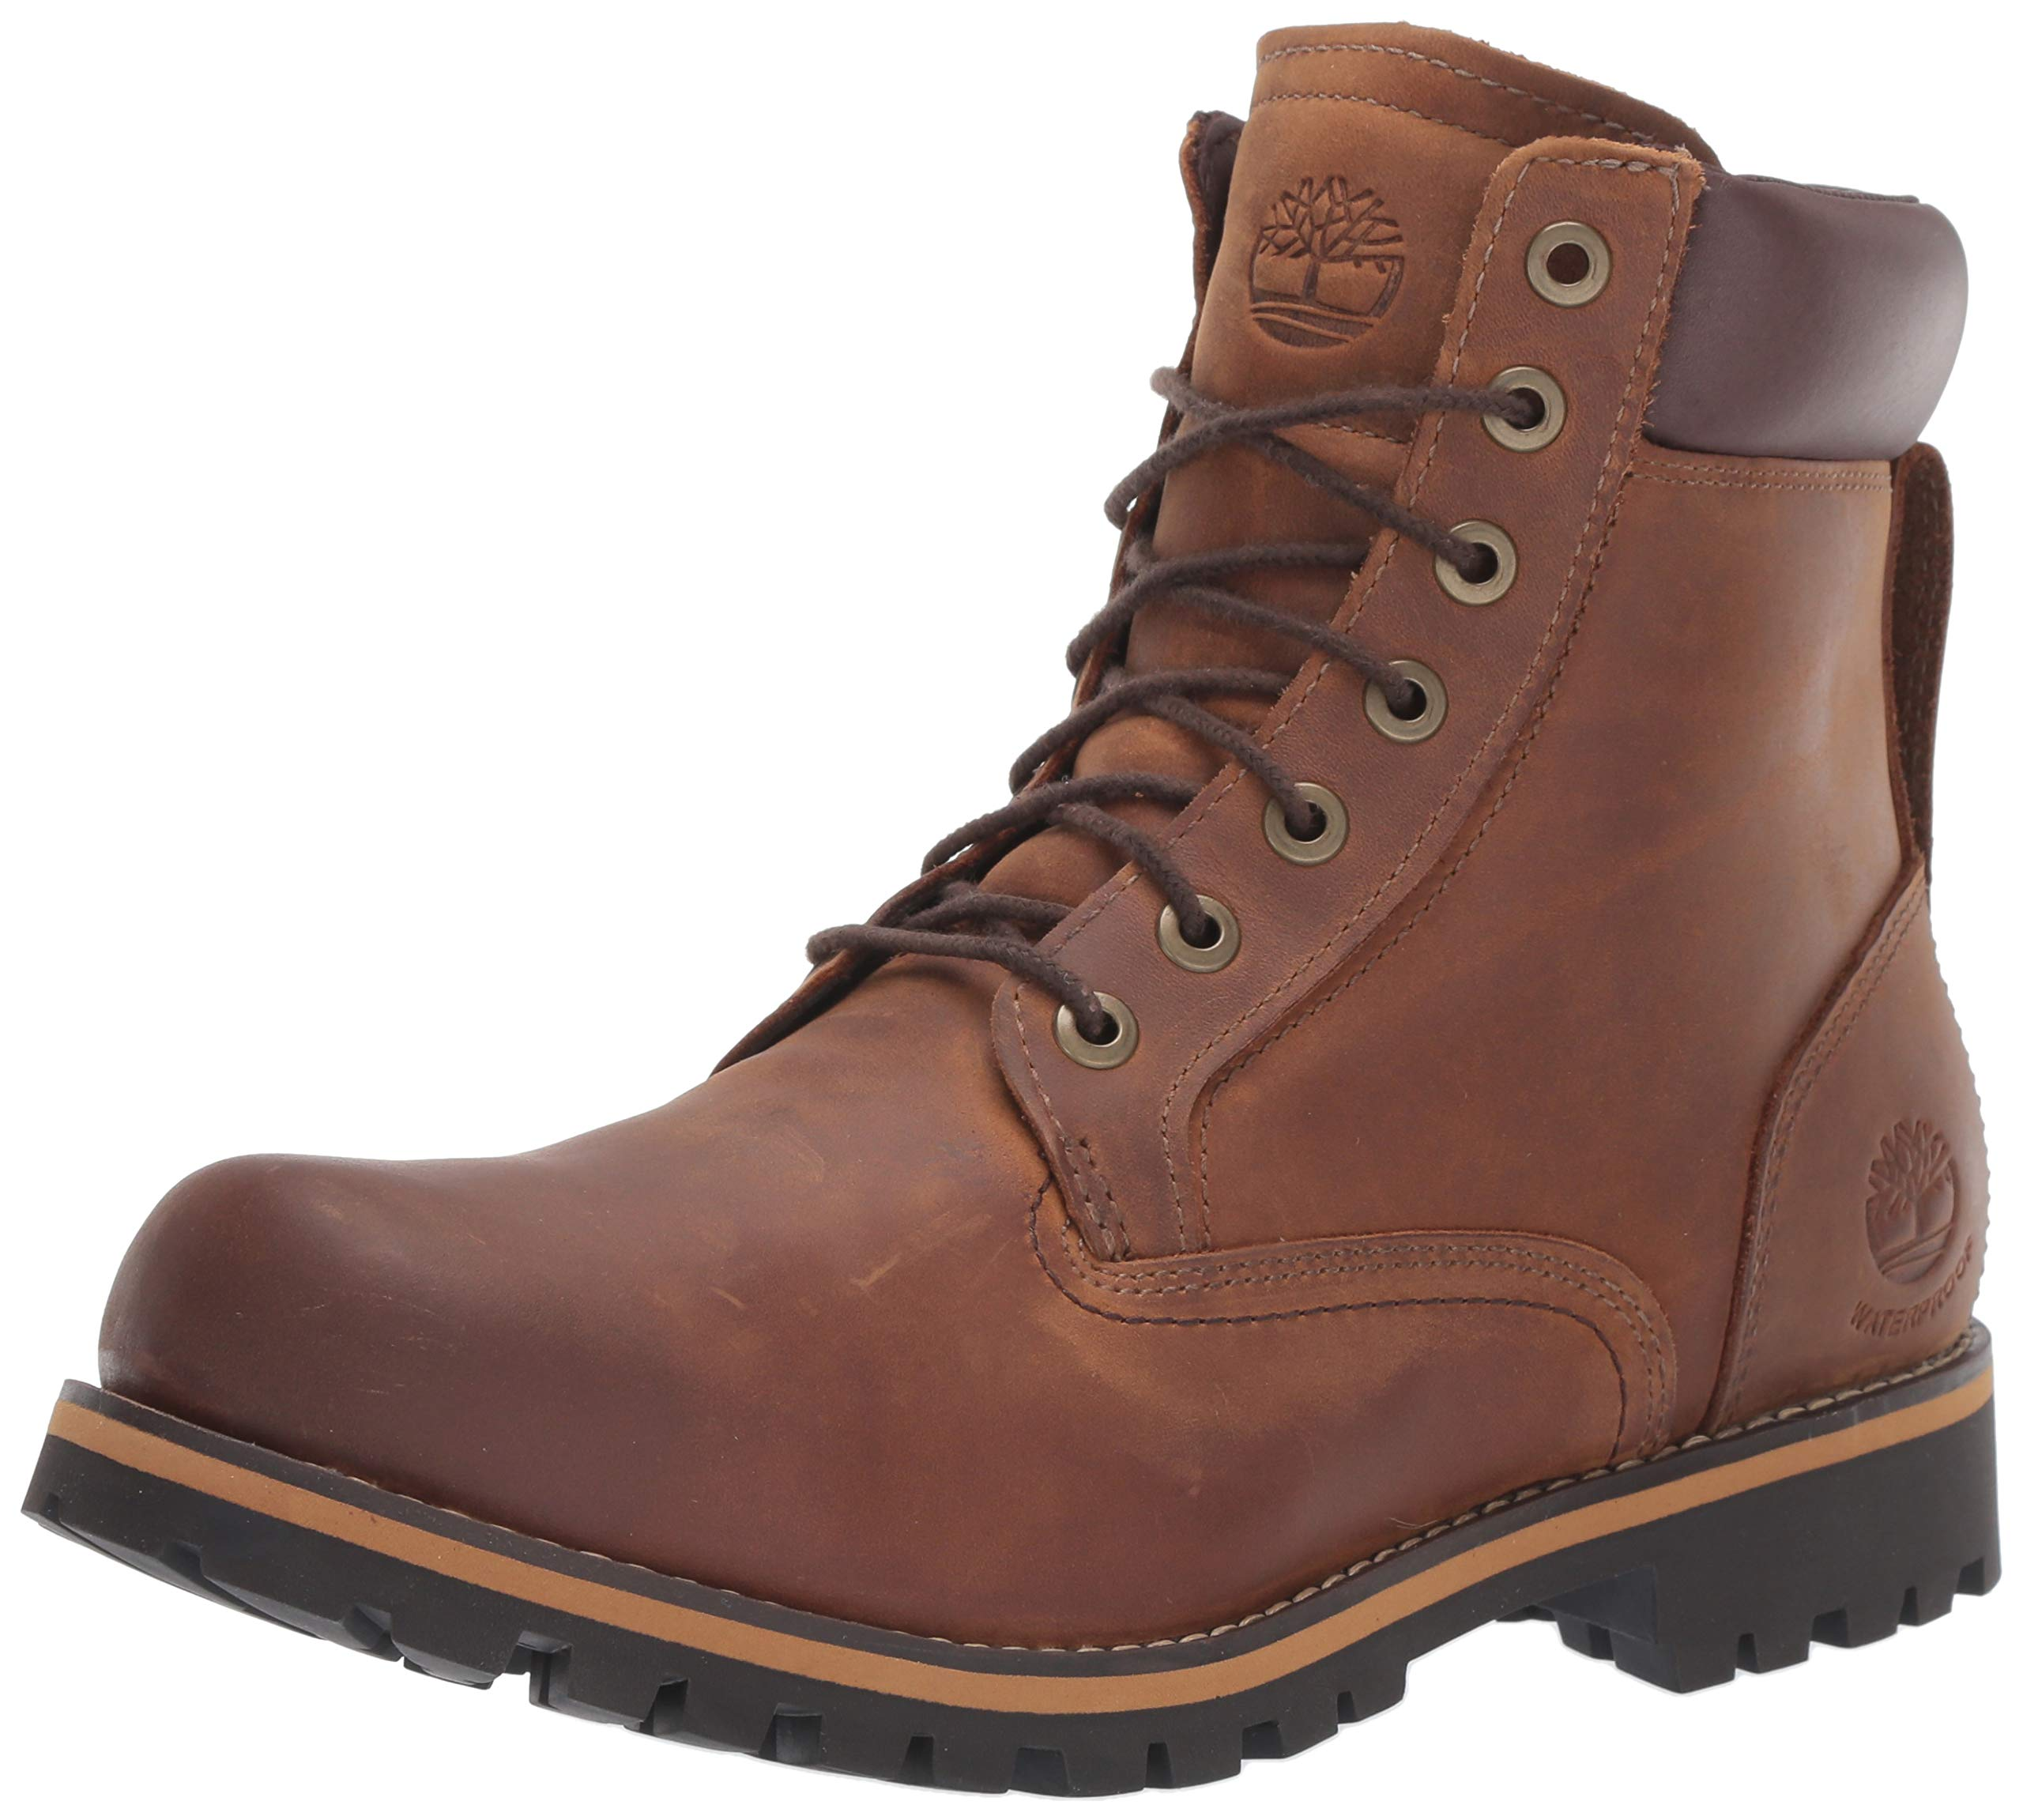 Timberland Men's Earthkeepers Rugged Boot, Medium brown full grain, 9 W US